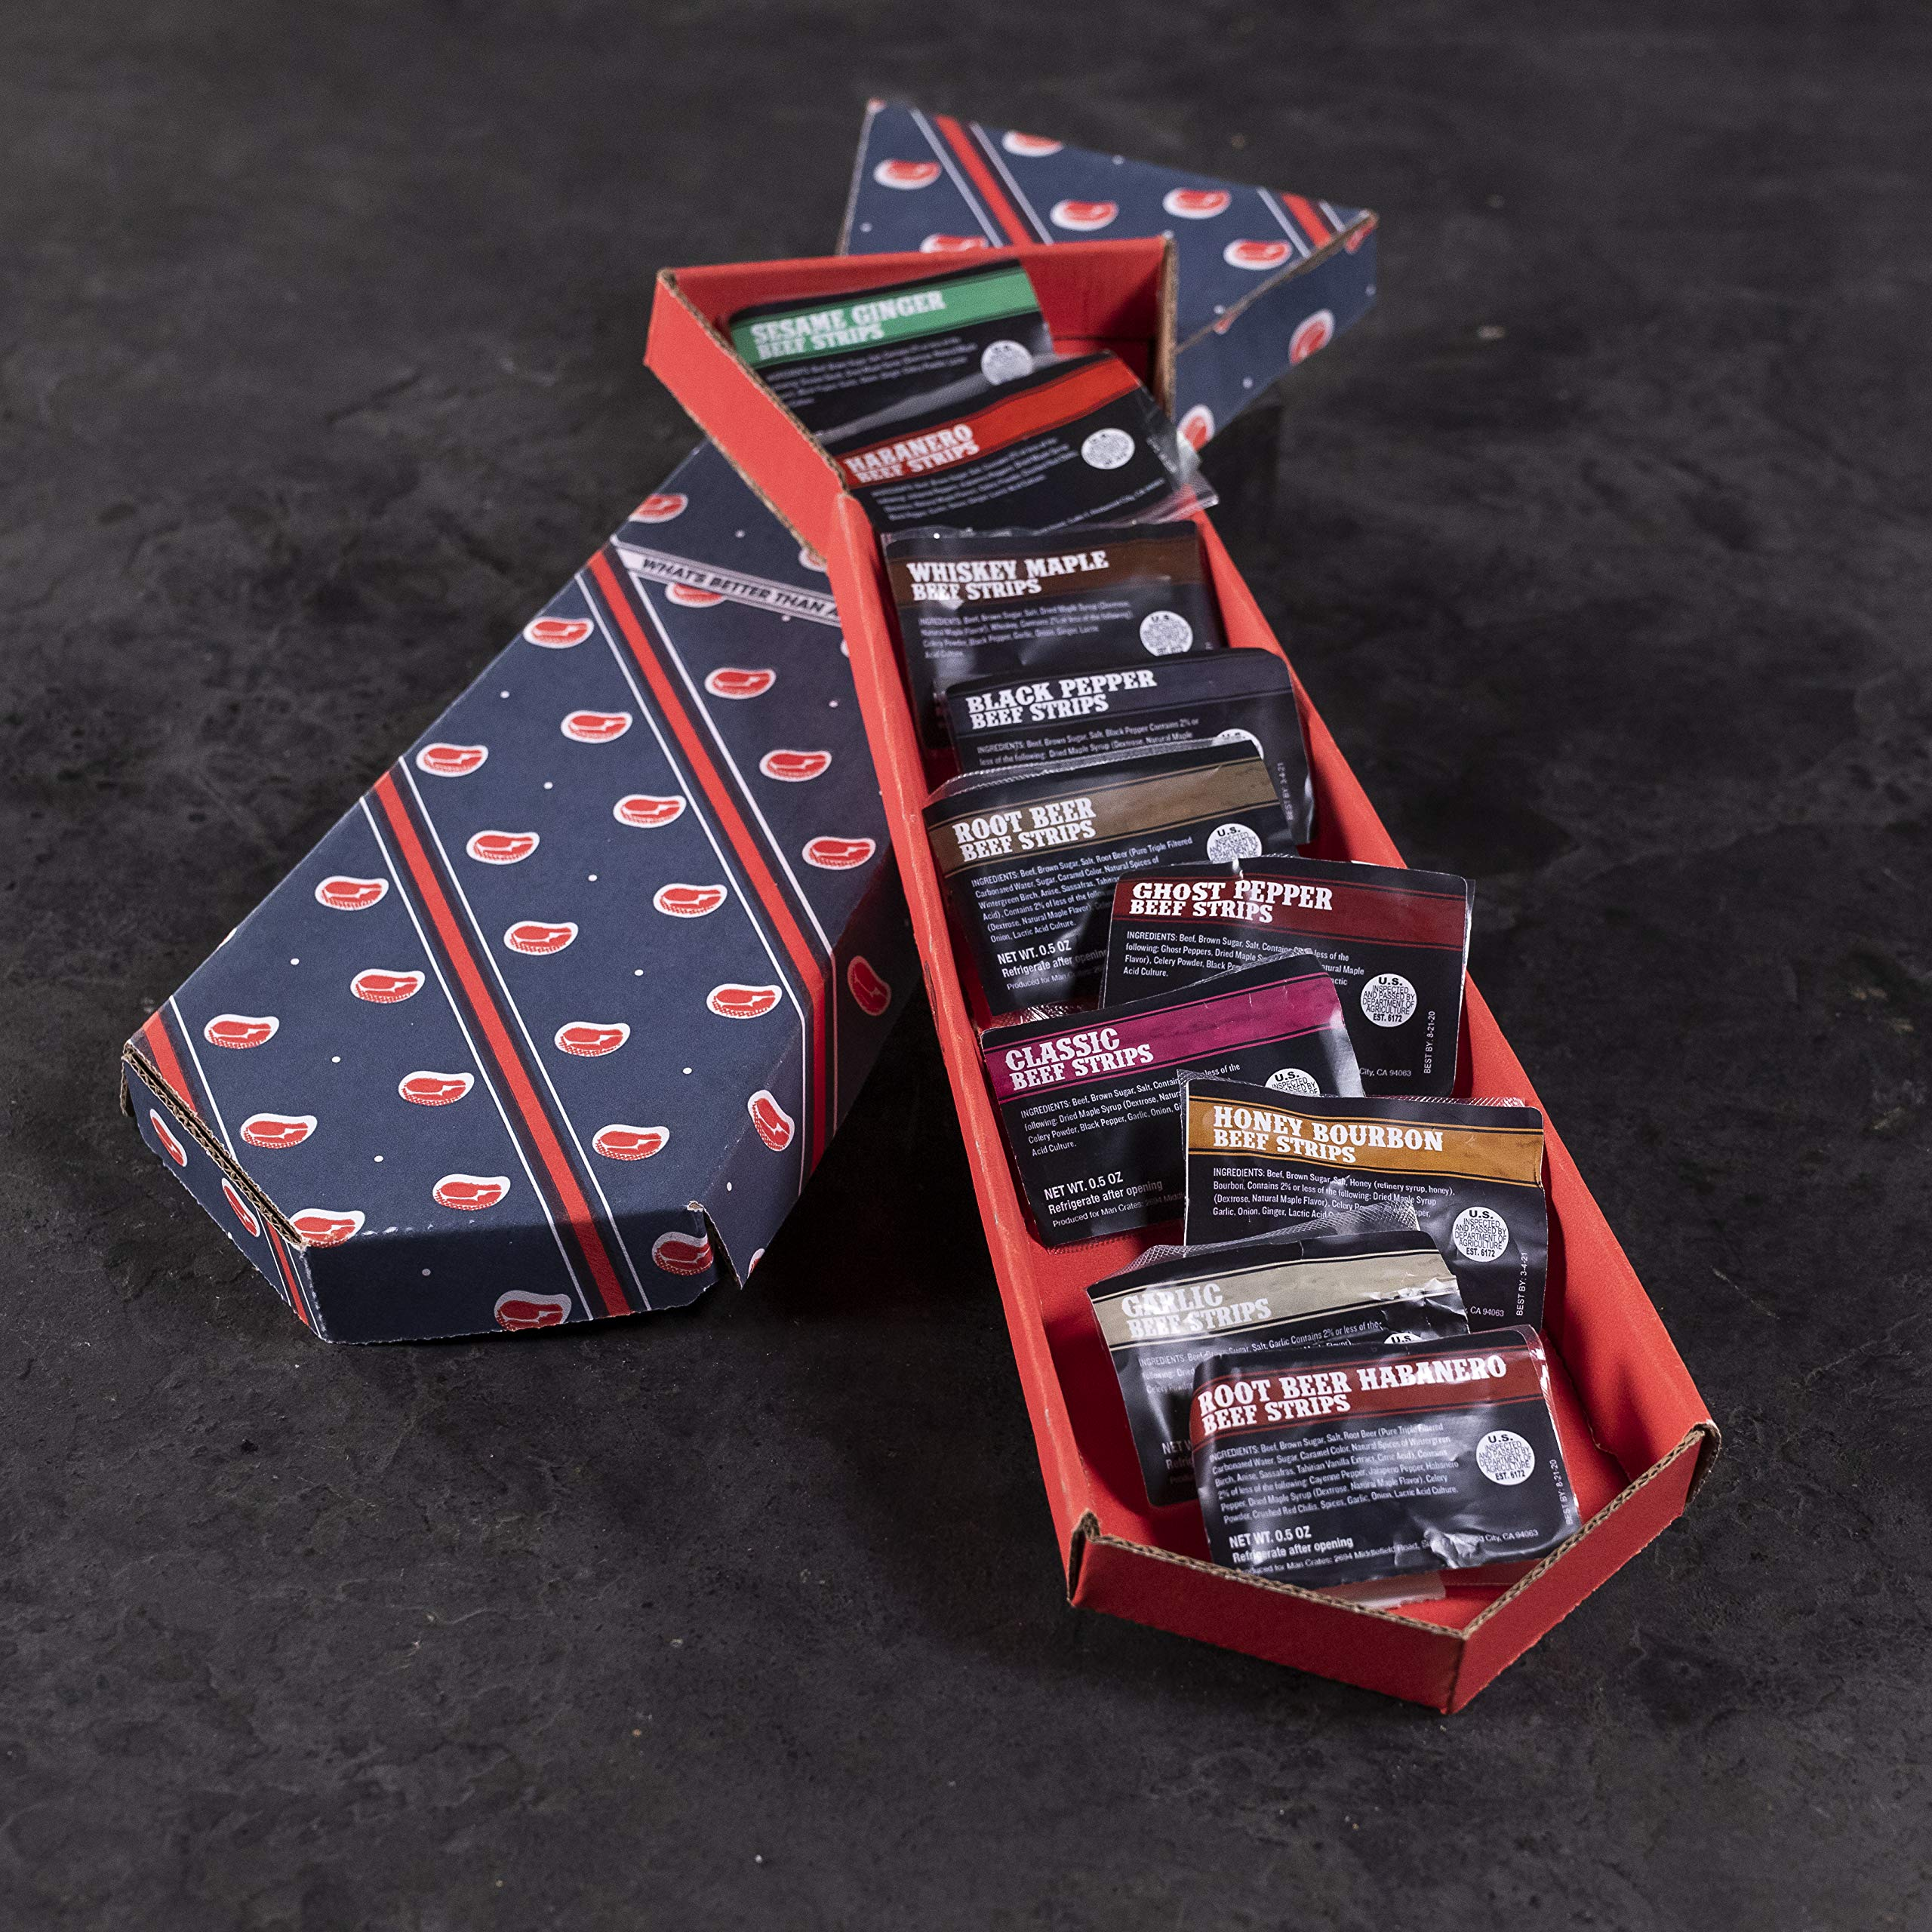 Man Crates Jerky Tie - Fun Gift For Men - Includes 10 Delicious Beef Jerky Flavors - In A Delightfully Surprising Tie-Shaped Box by Man Crates (Image #5)